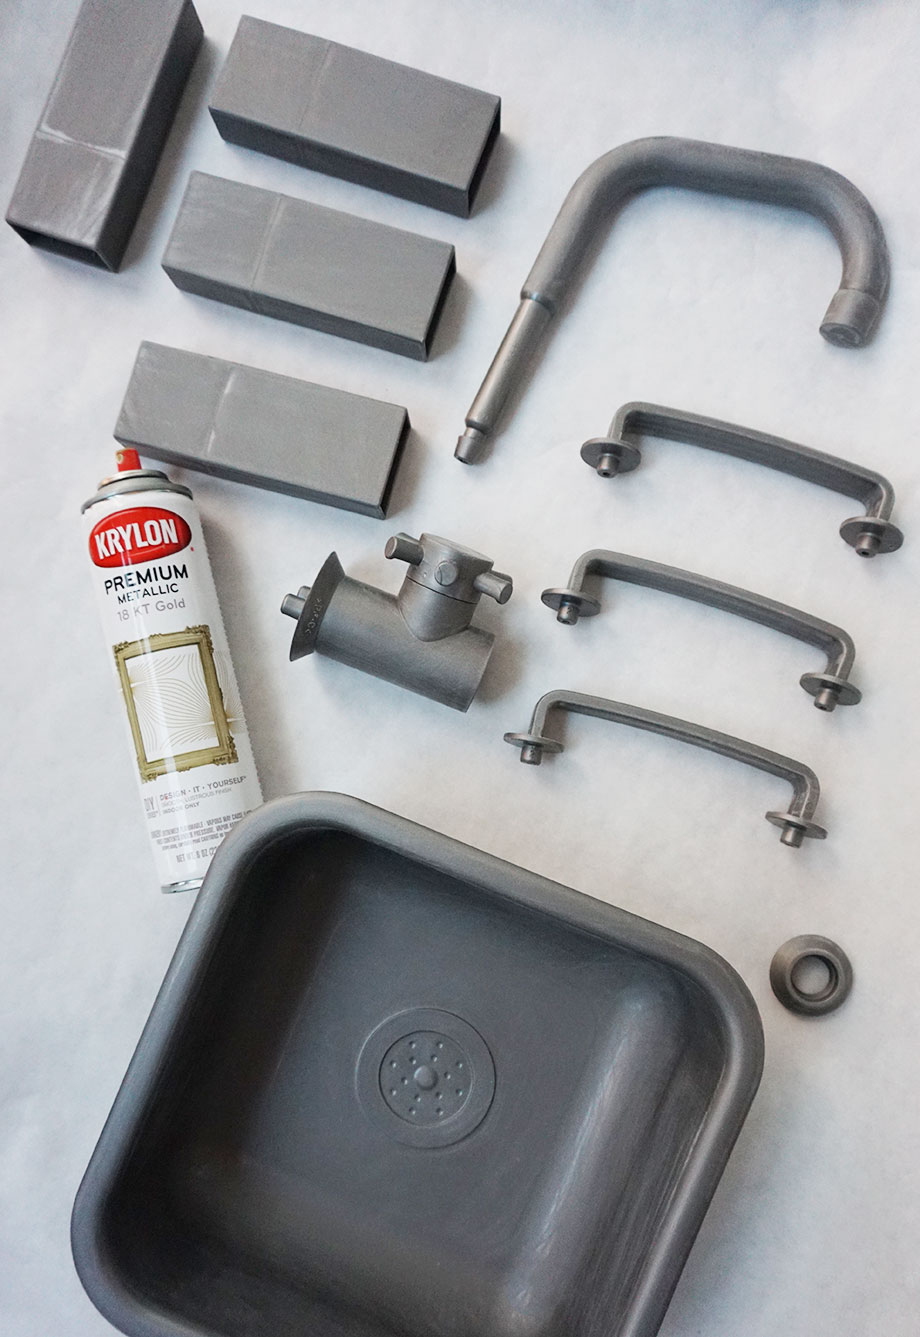 Spray paint the kitchen fixtures for an epic IKEA hack.